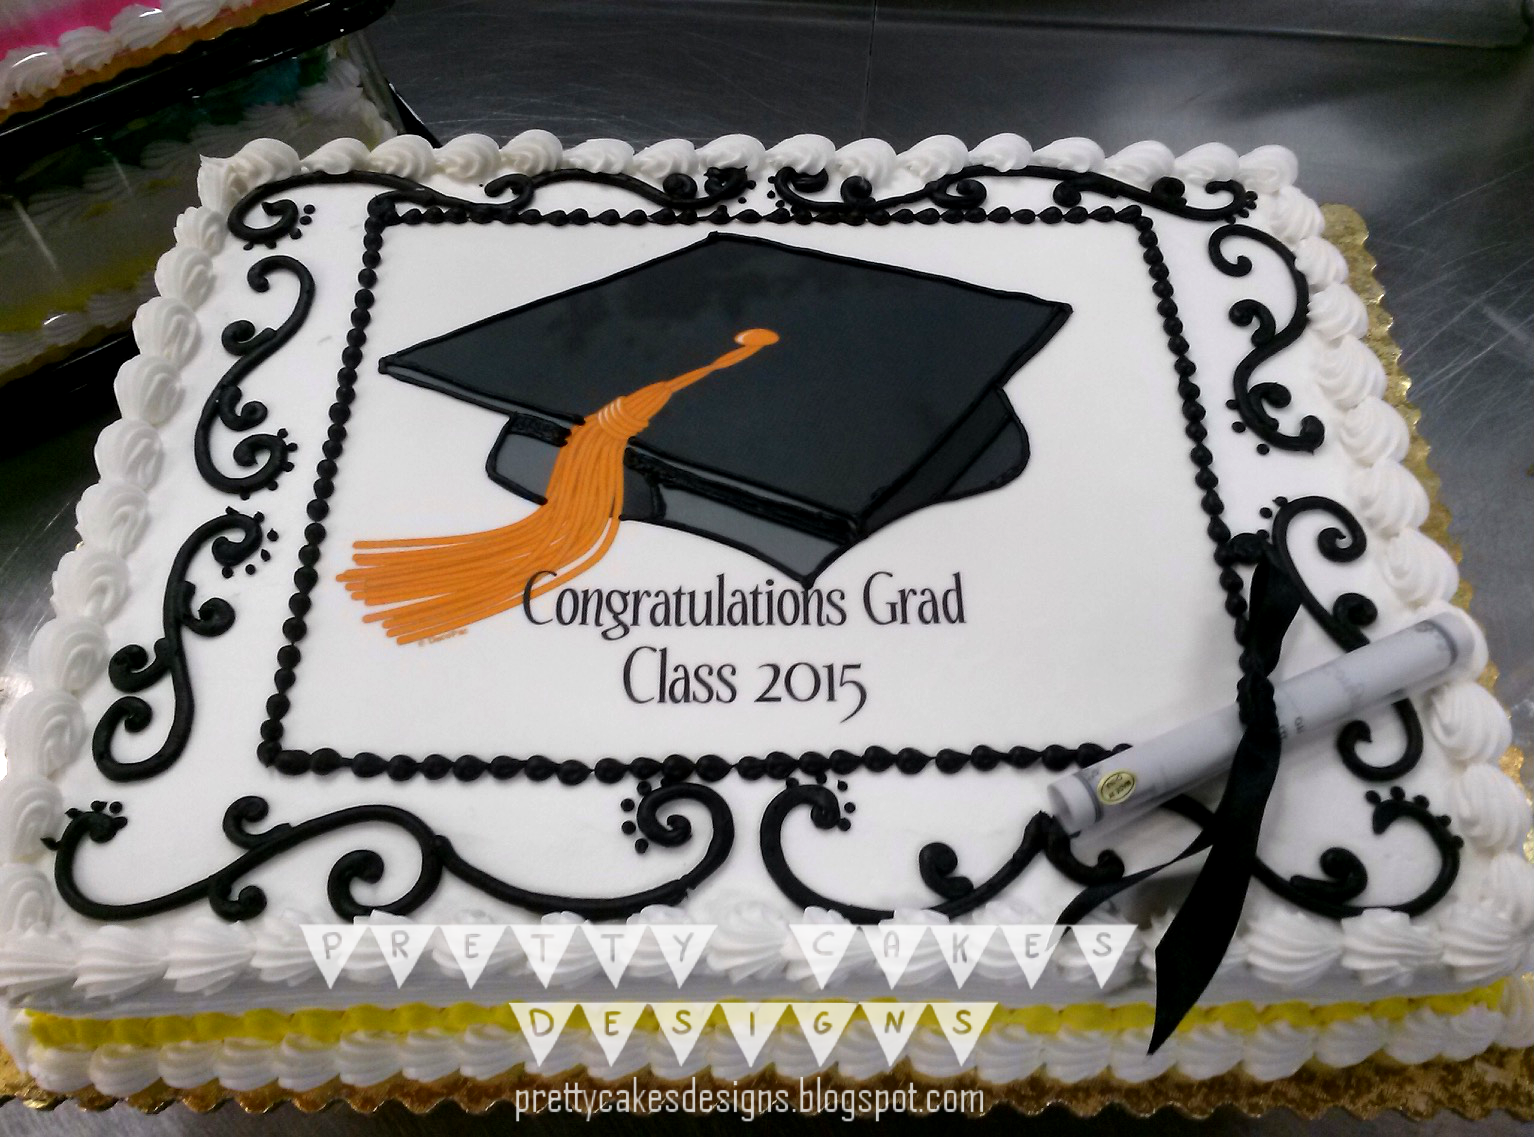 Cake Design Graduation : Pretty Cakes Designs: Happy Graduation Class of 2015!